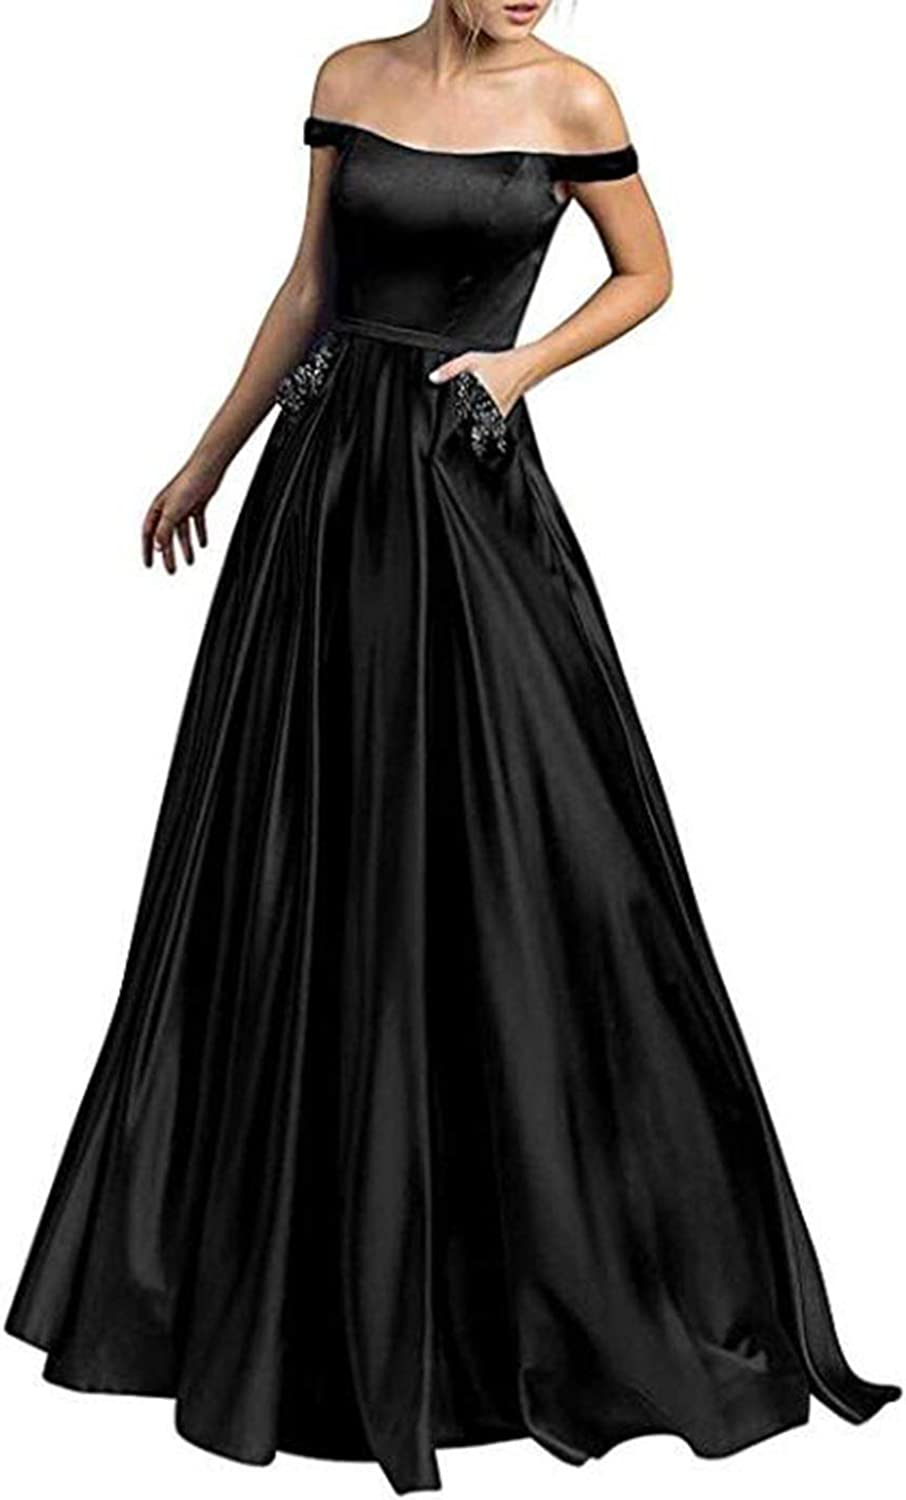 Alilith.Z Sexy Off The Shoulder Satin Prom Dresses Long Formal Evening Dress Party Gowns for Women with Beaded Pockets